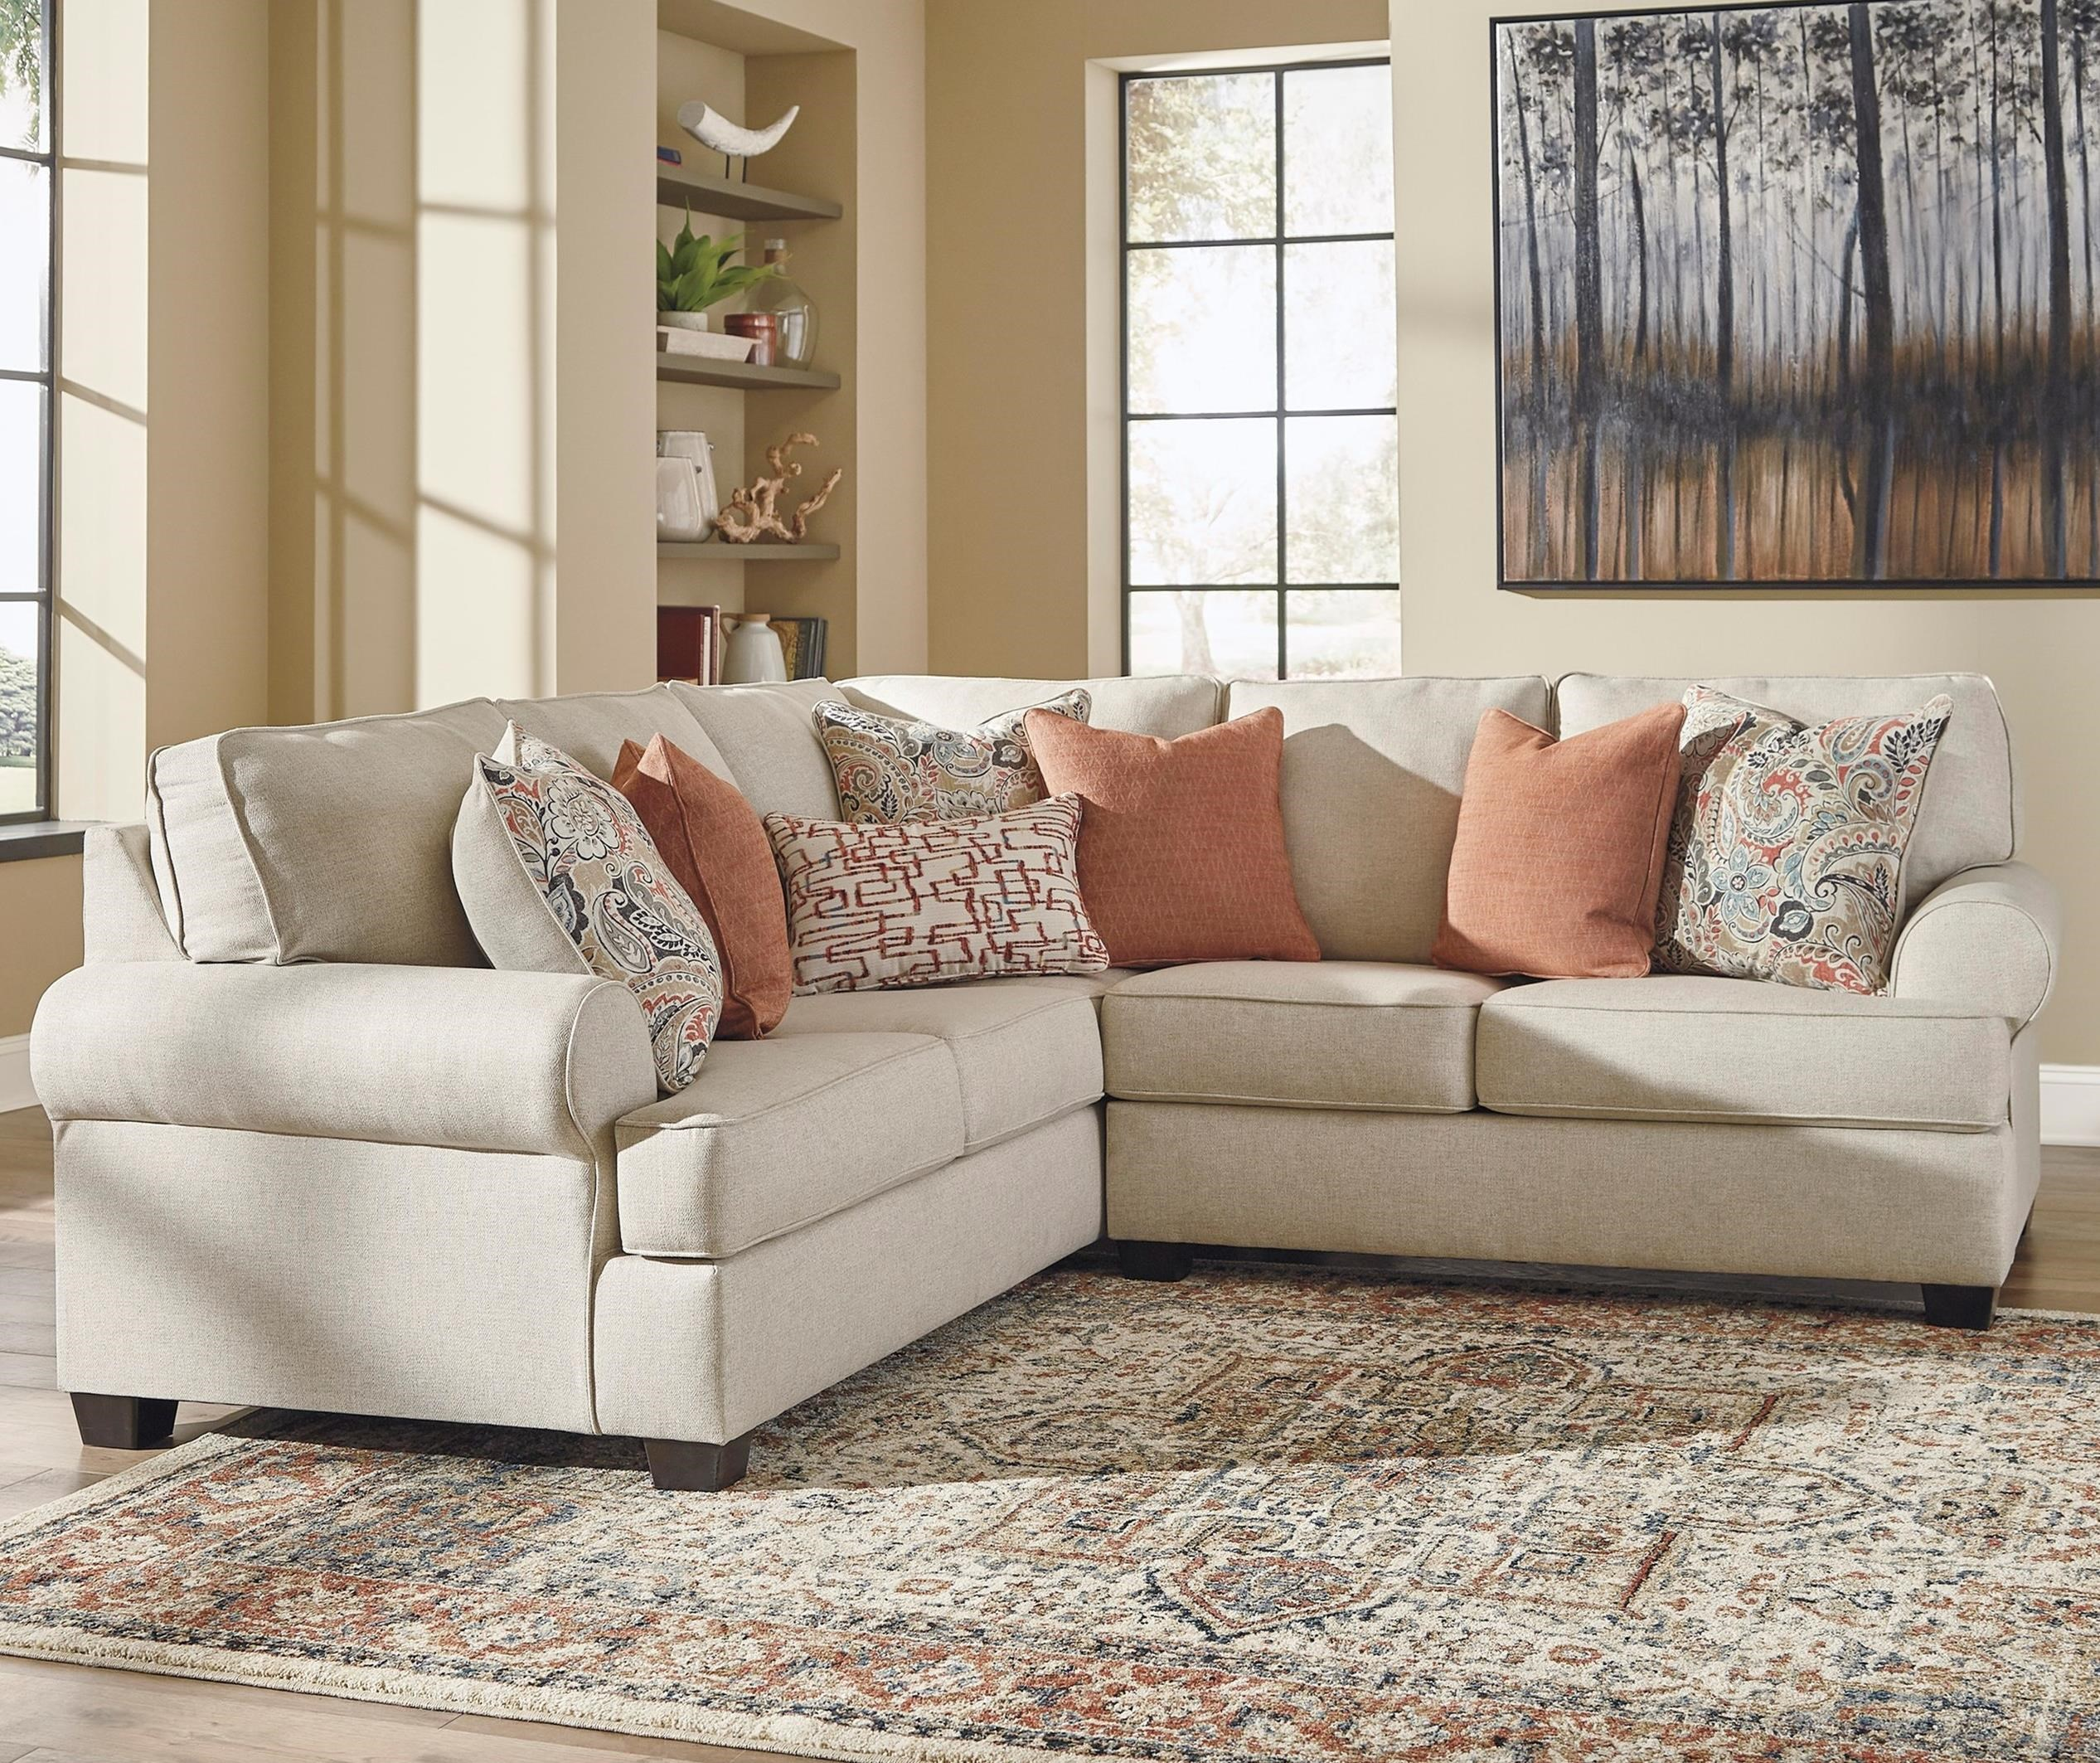 Amici 2-Piece Corner Sectional by Signature Design by Ashley at Household Furniture